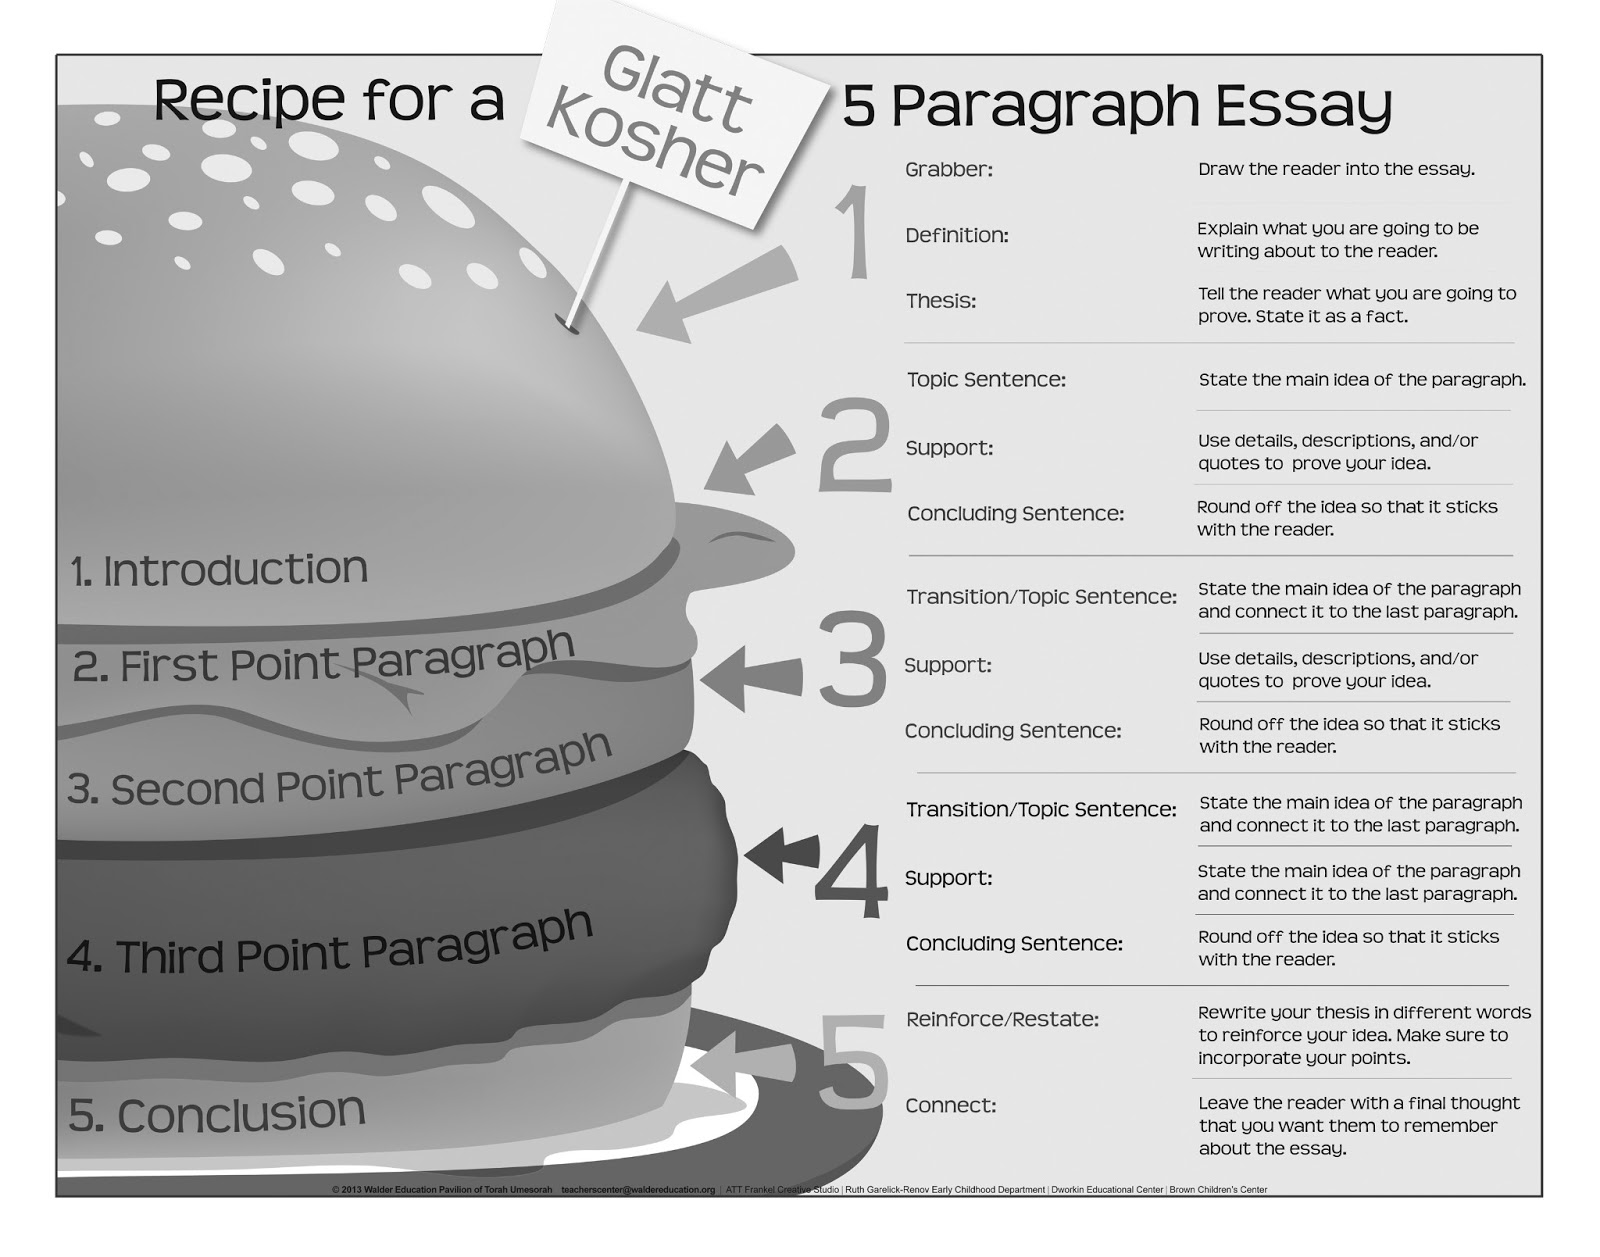 PROFESSIONAL ESSAY HELP FOR EVERY STUDENT